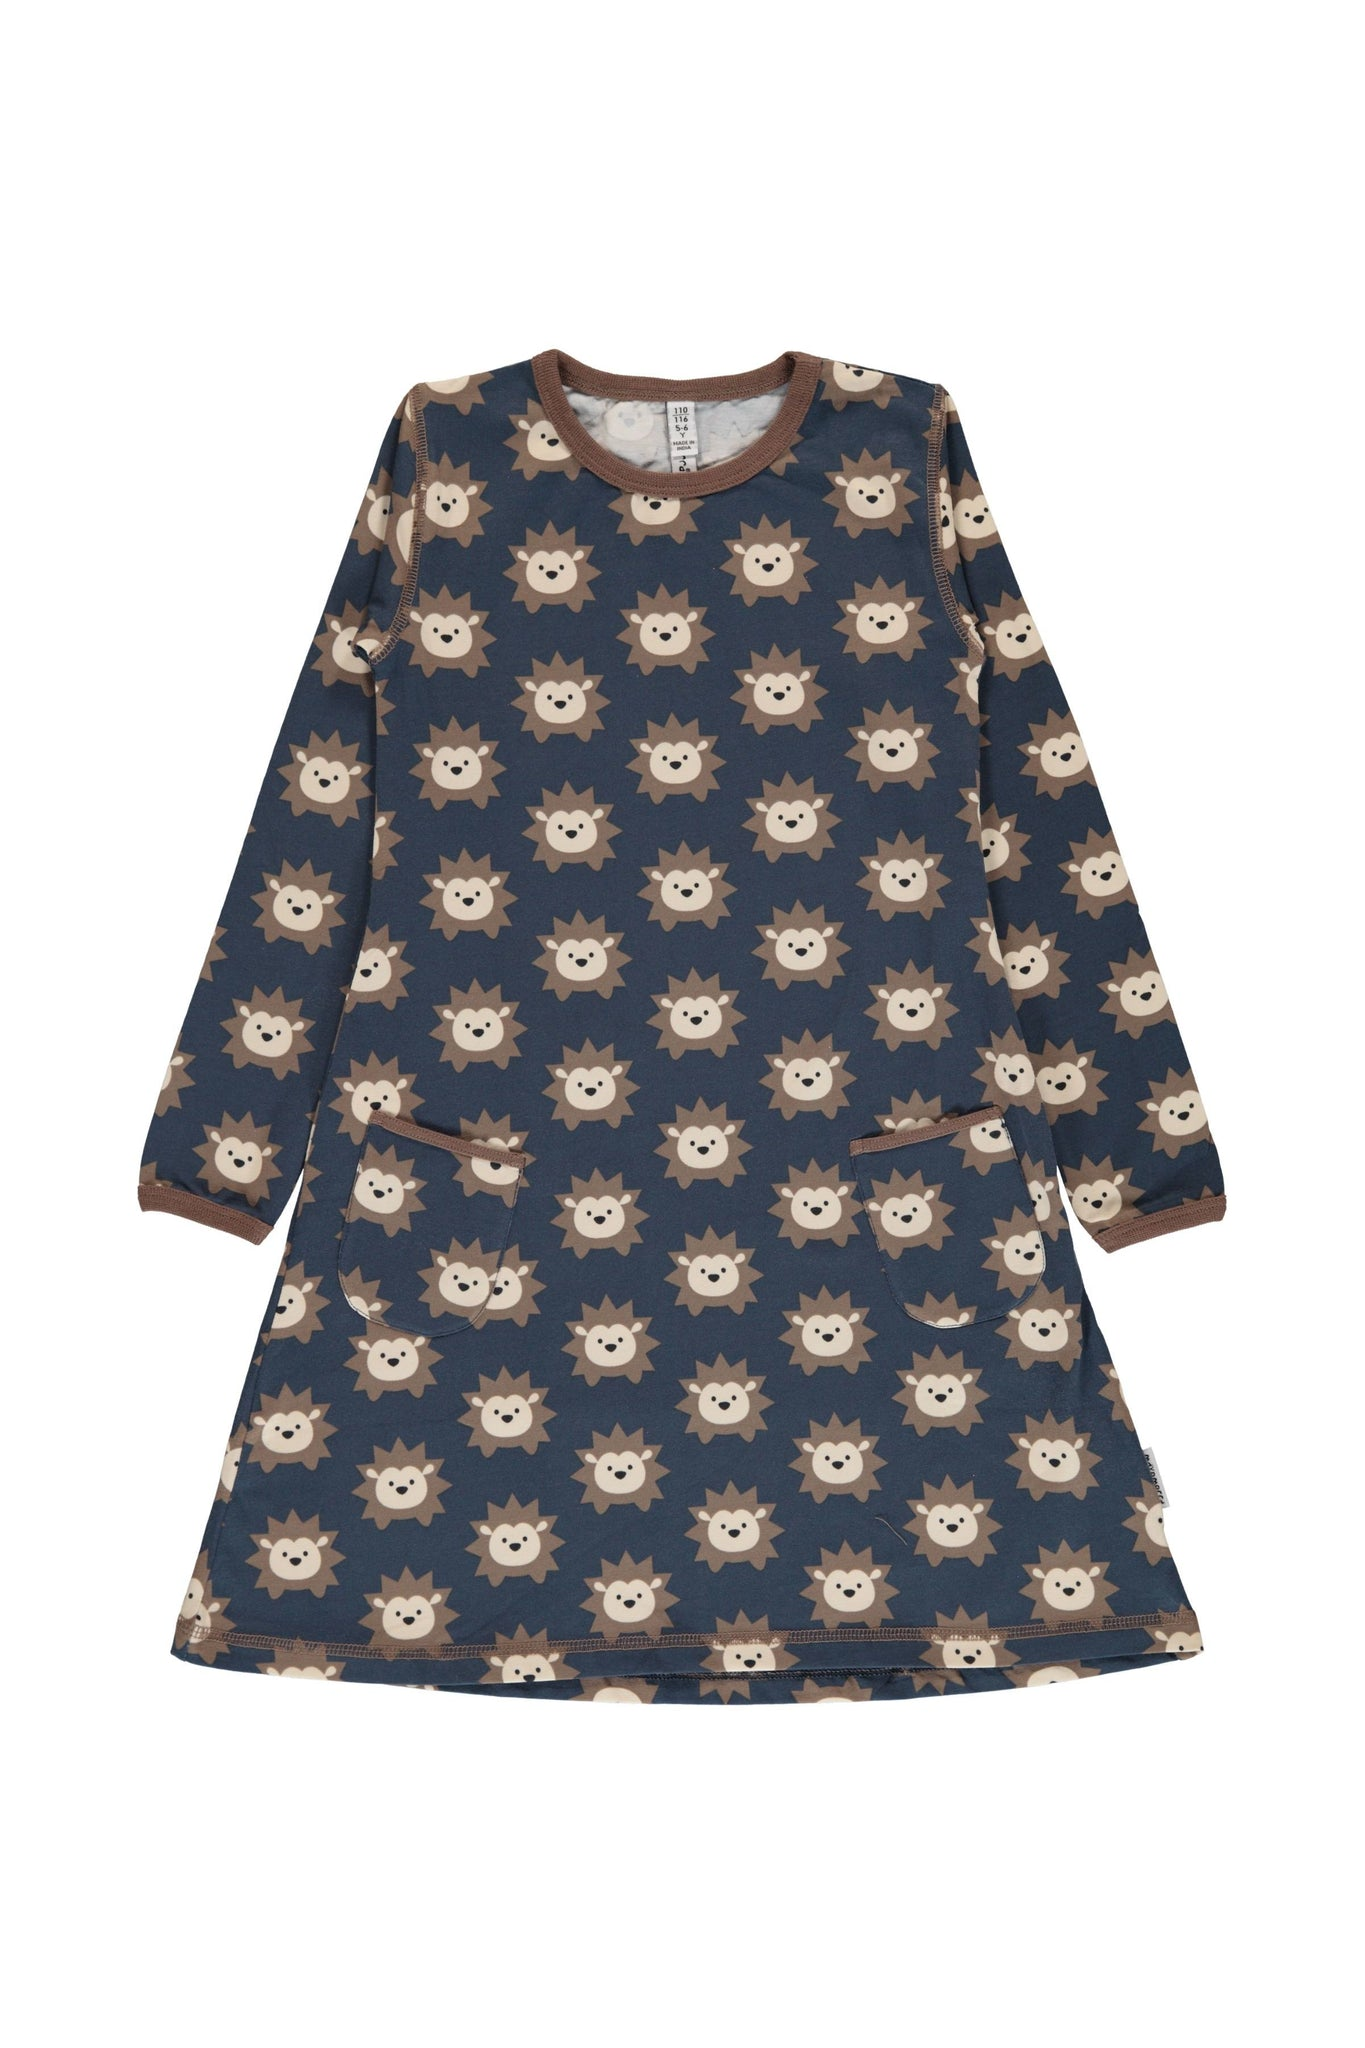 Hedgehog - A-Line - Dress - Long Sleeves - Maxomorra Fashion - Snugglefox